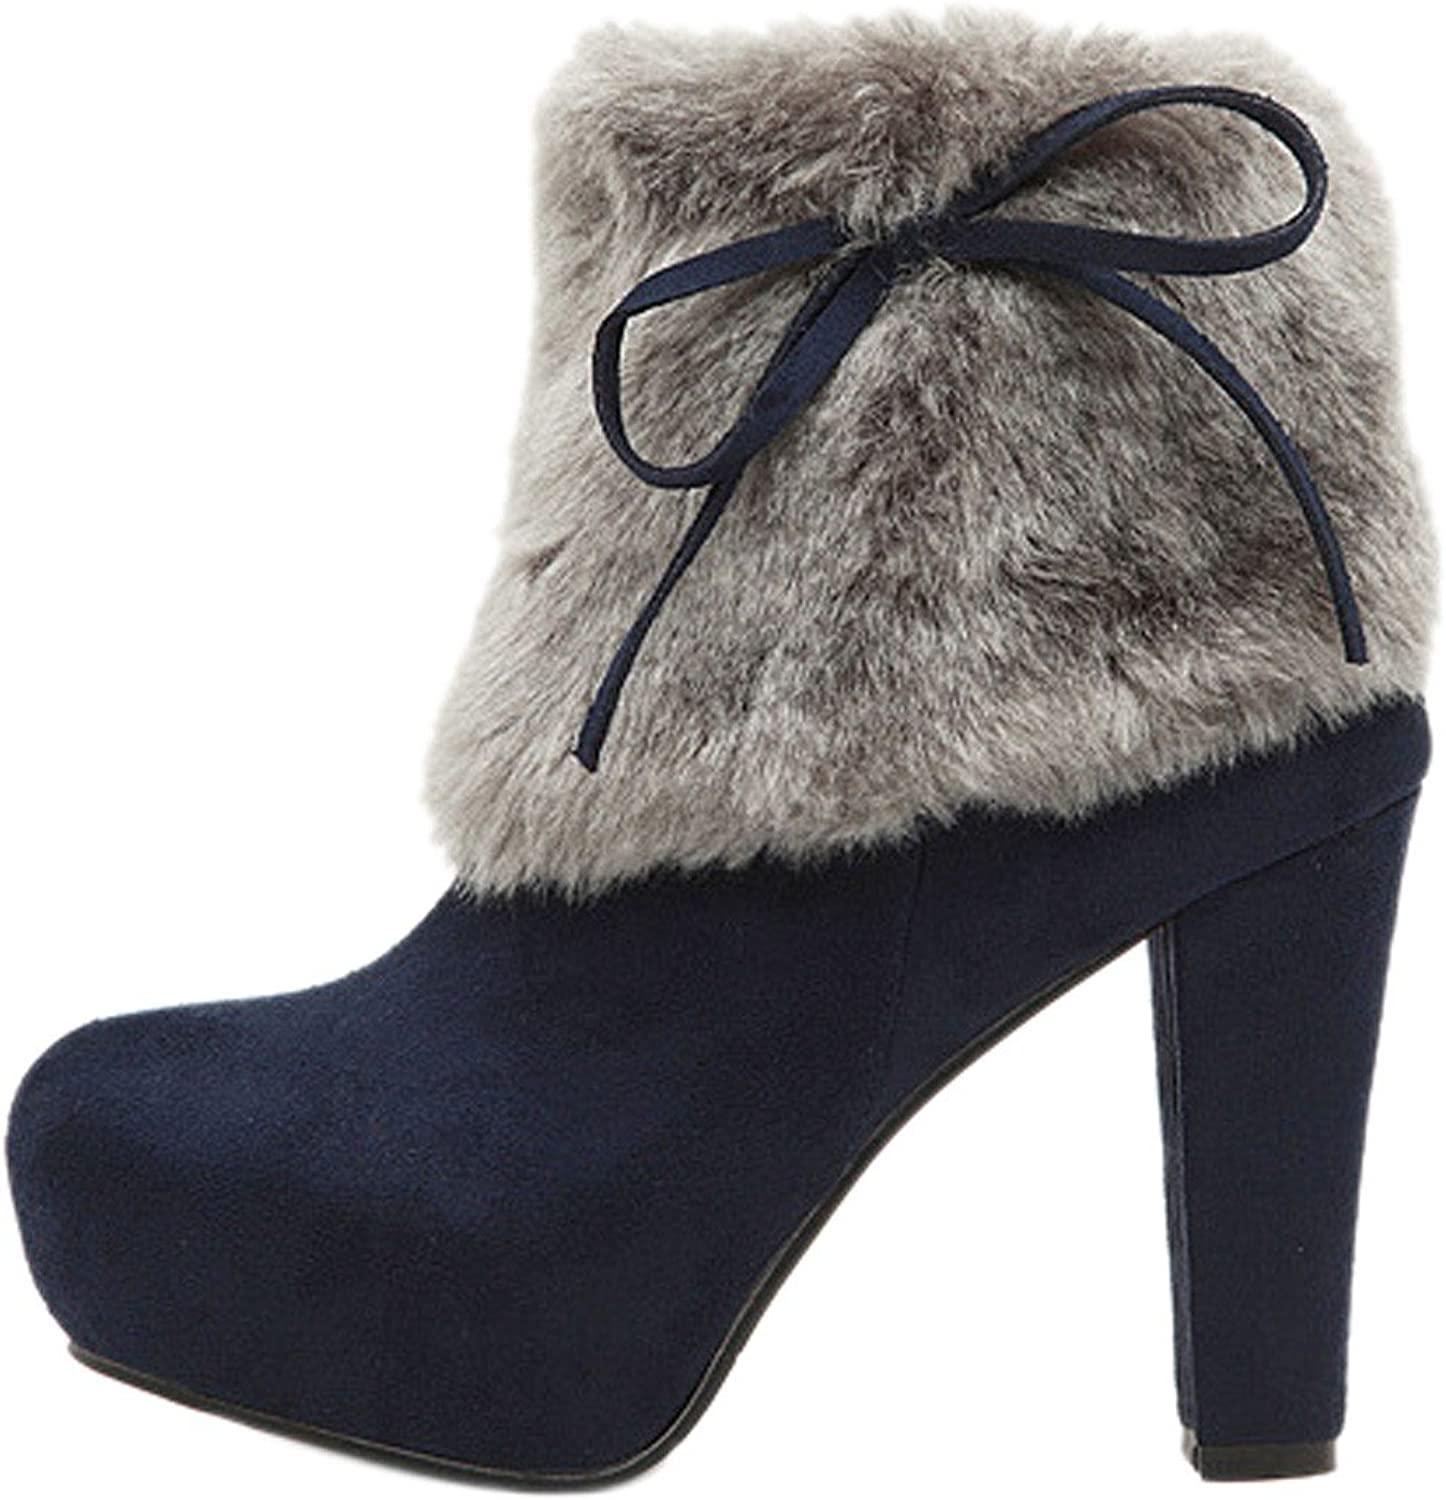 Qiyun Winter Warm Women Suede Platform High Heel Ankle Boots Bowknot Fashion shoes shoes Bottes